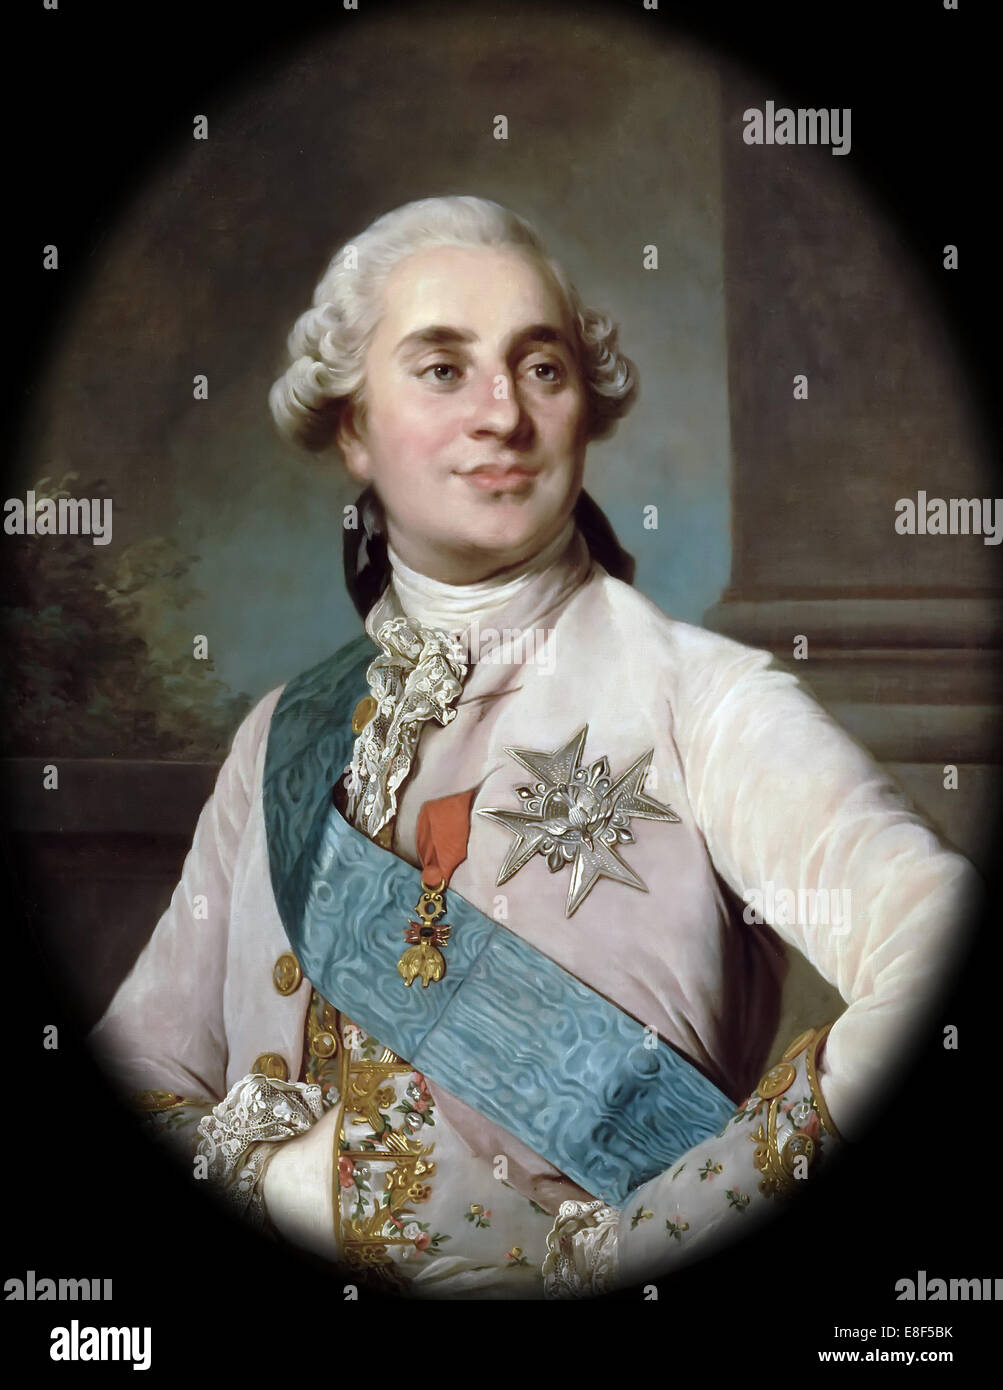 Portrait of the King Louis XVI (1754-1793). Artist: Duplessis, Joseph-Siffred (1725-1802) - Stock Image